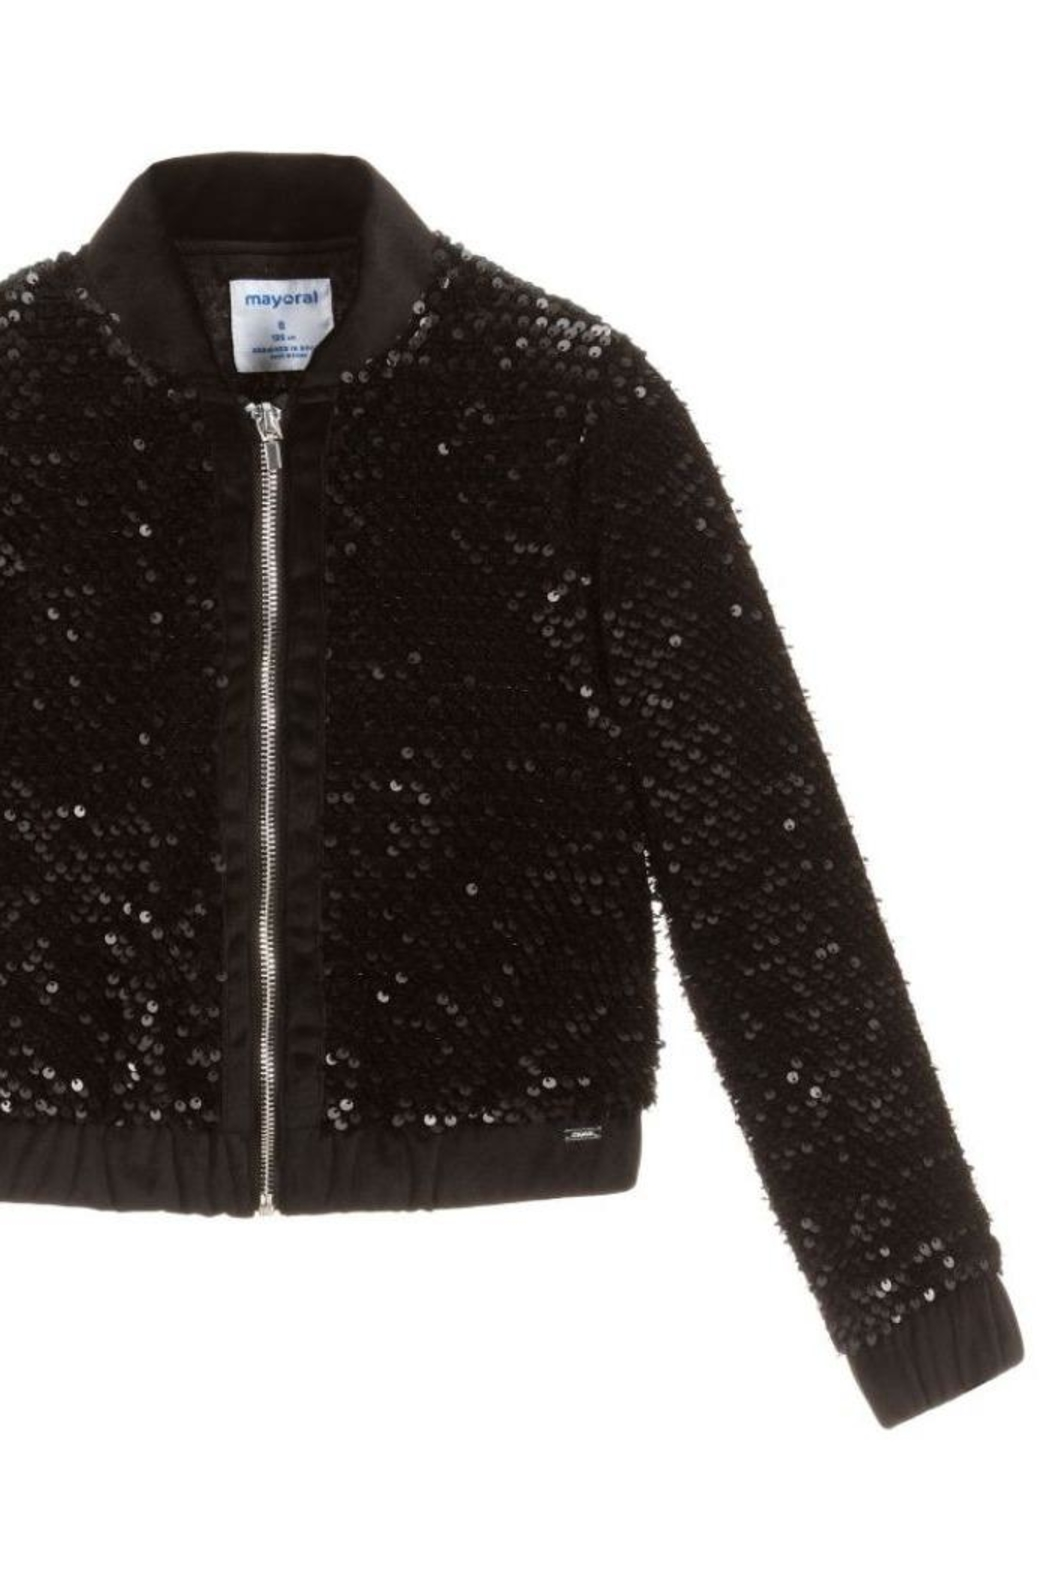 Mayoral Sequin Jacket - Front Full Image